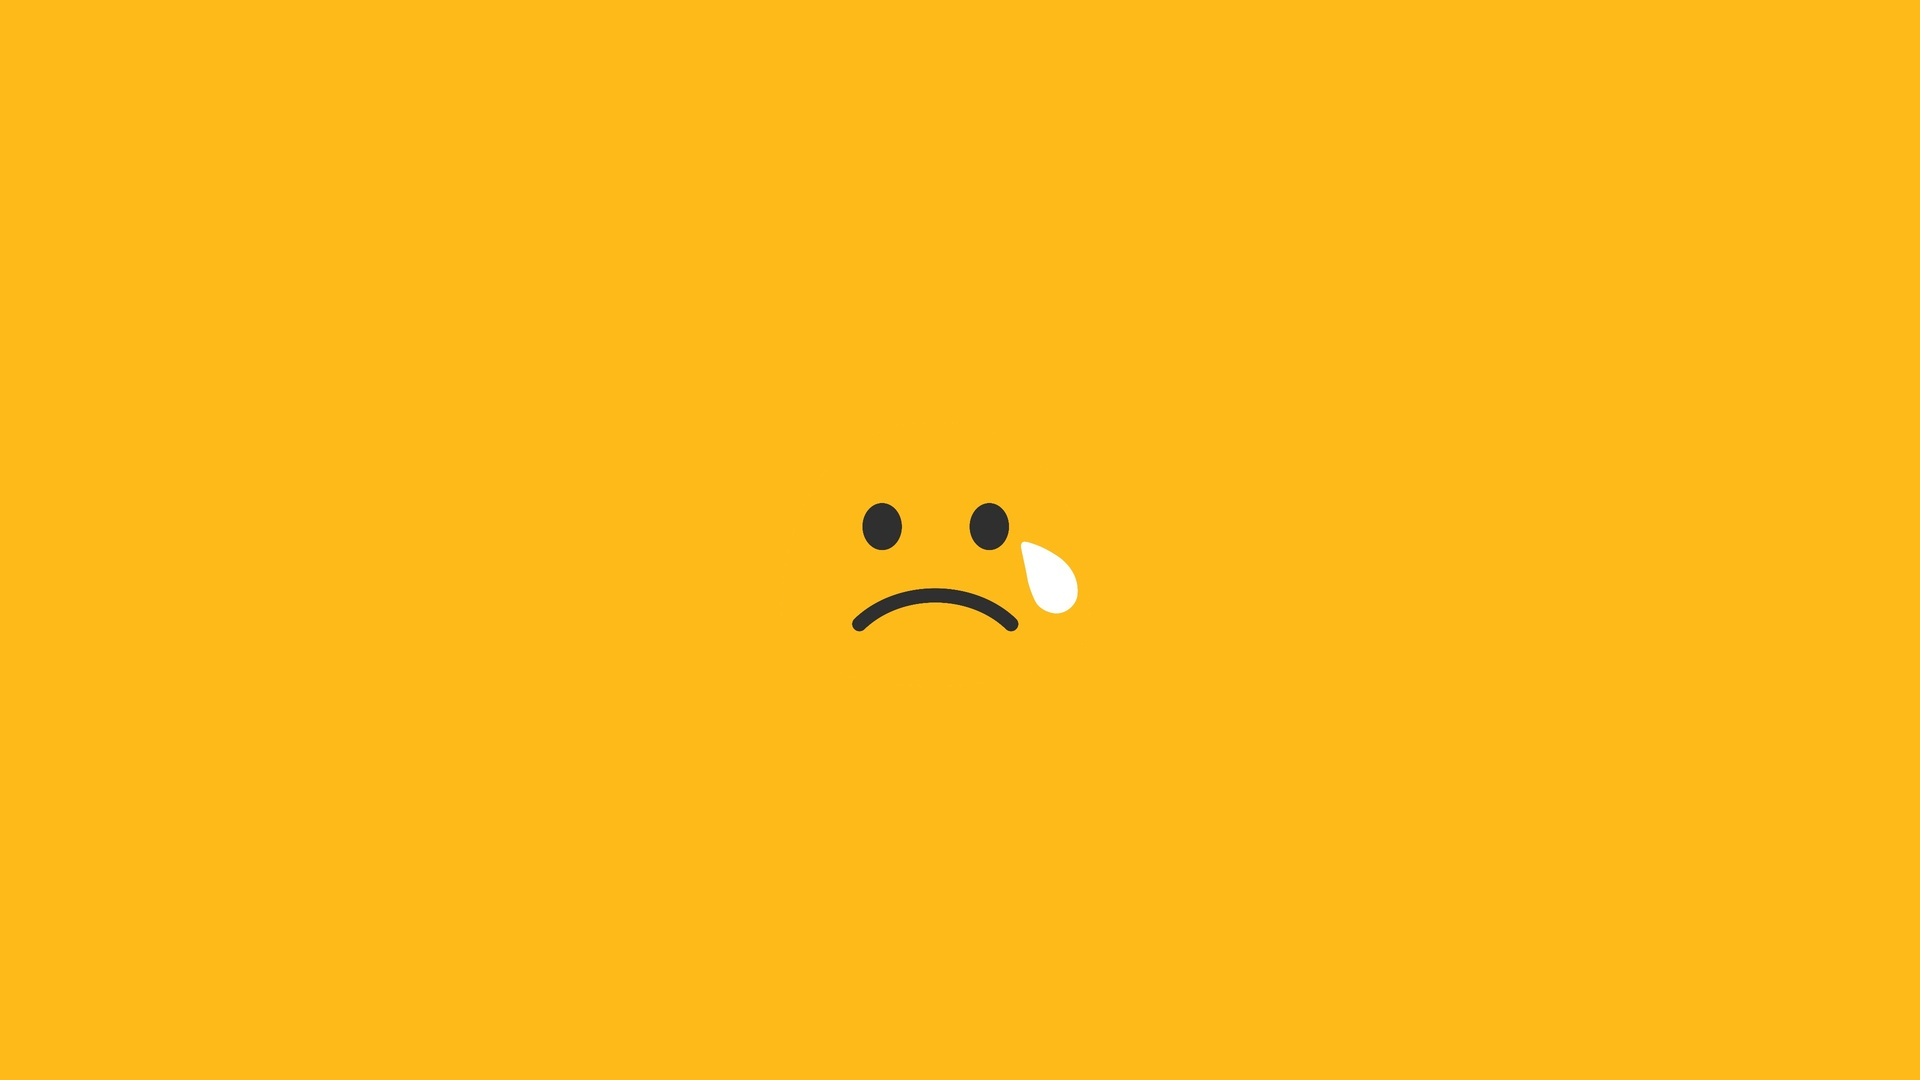 1920x1080 sad tears smiley minimalism 4k laptop full hd 1080p hd 4k